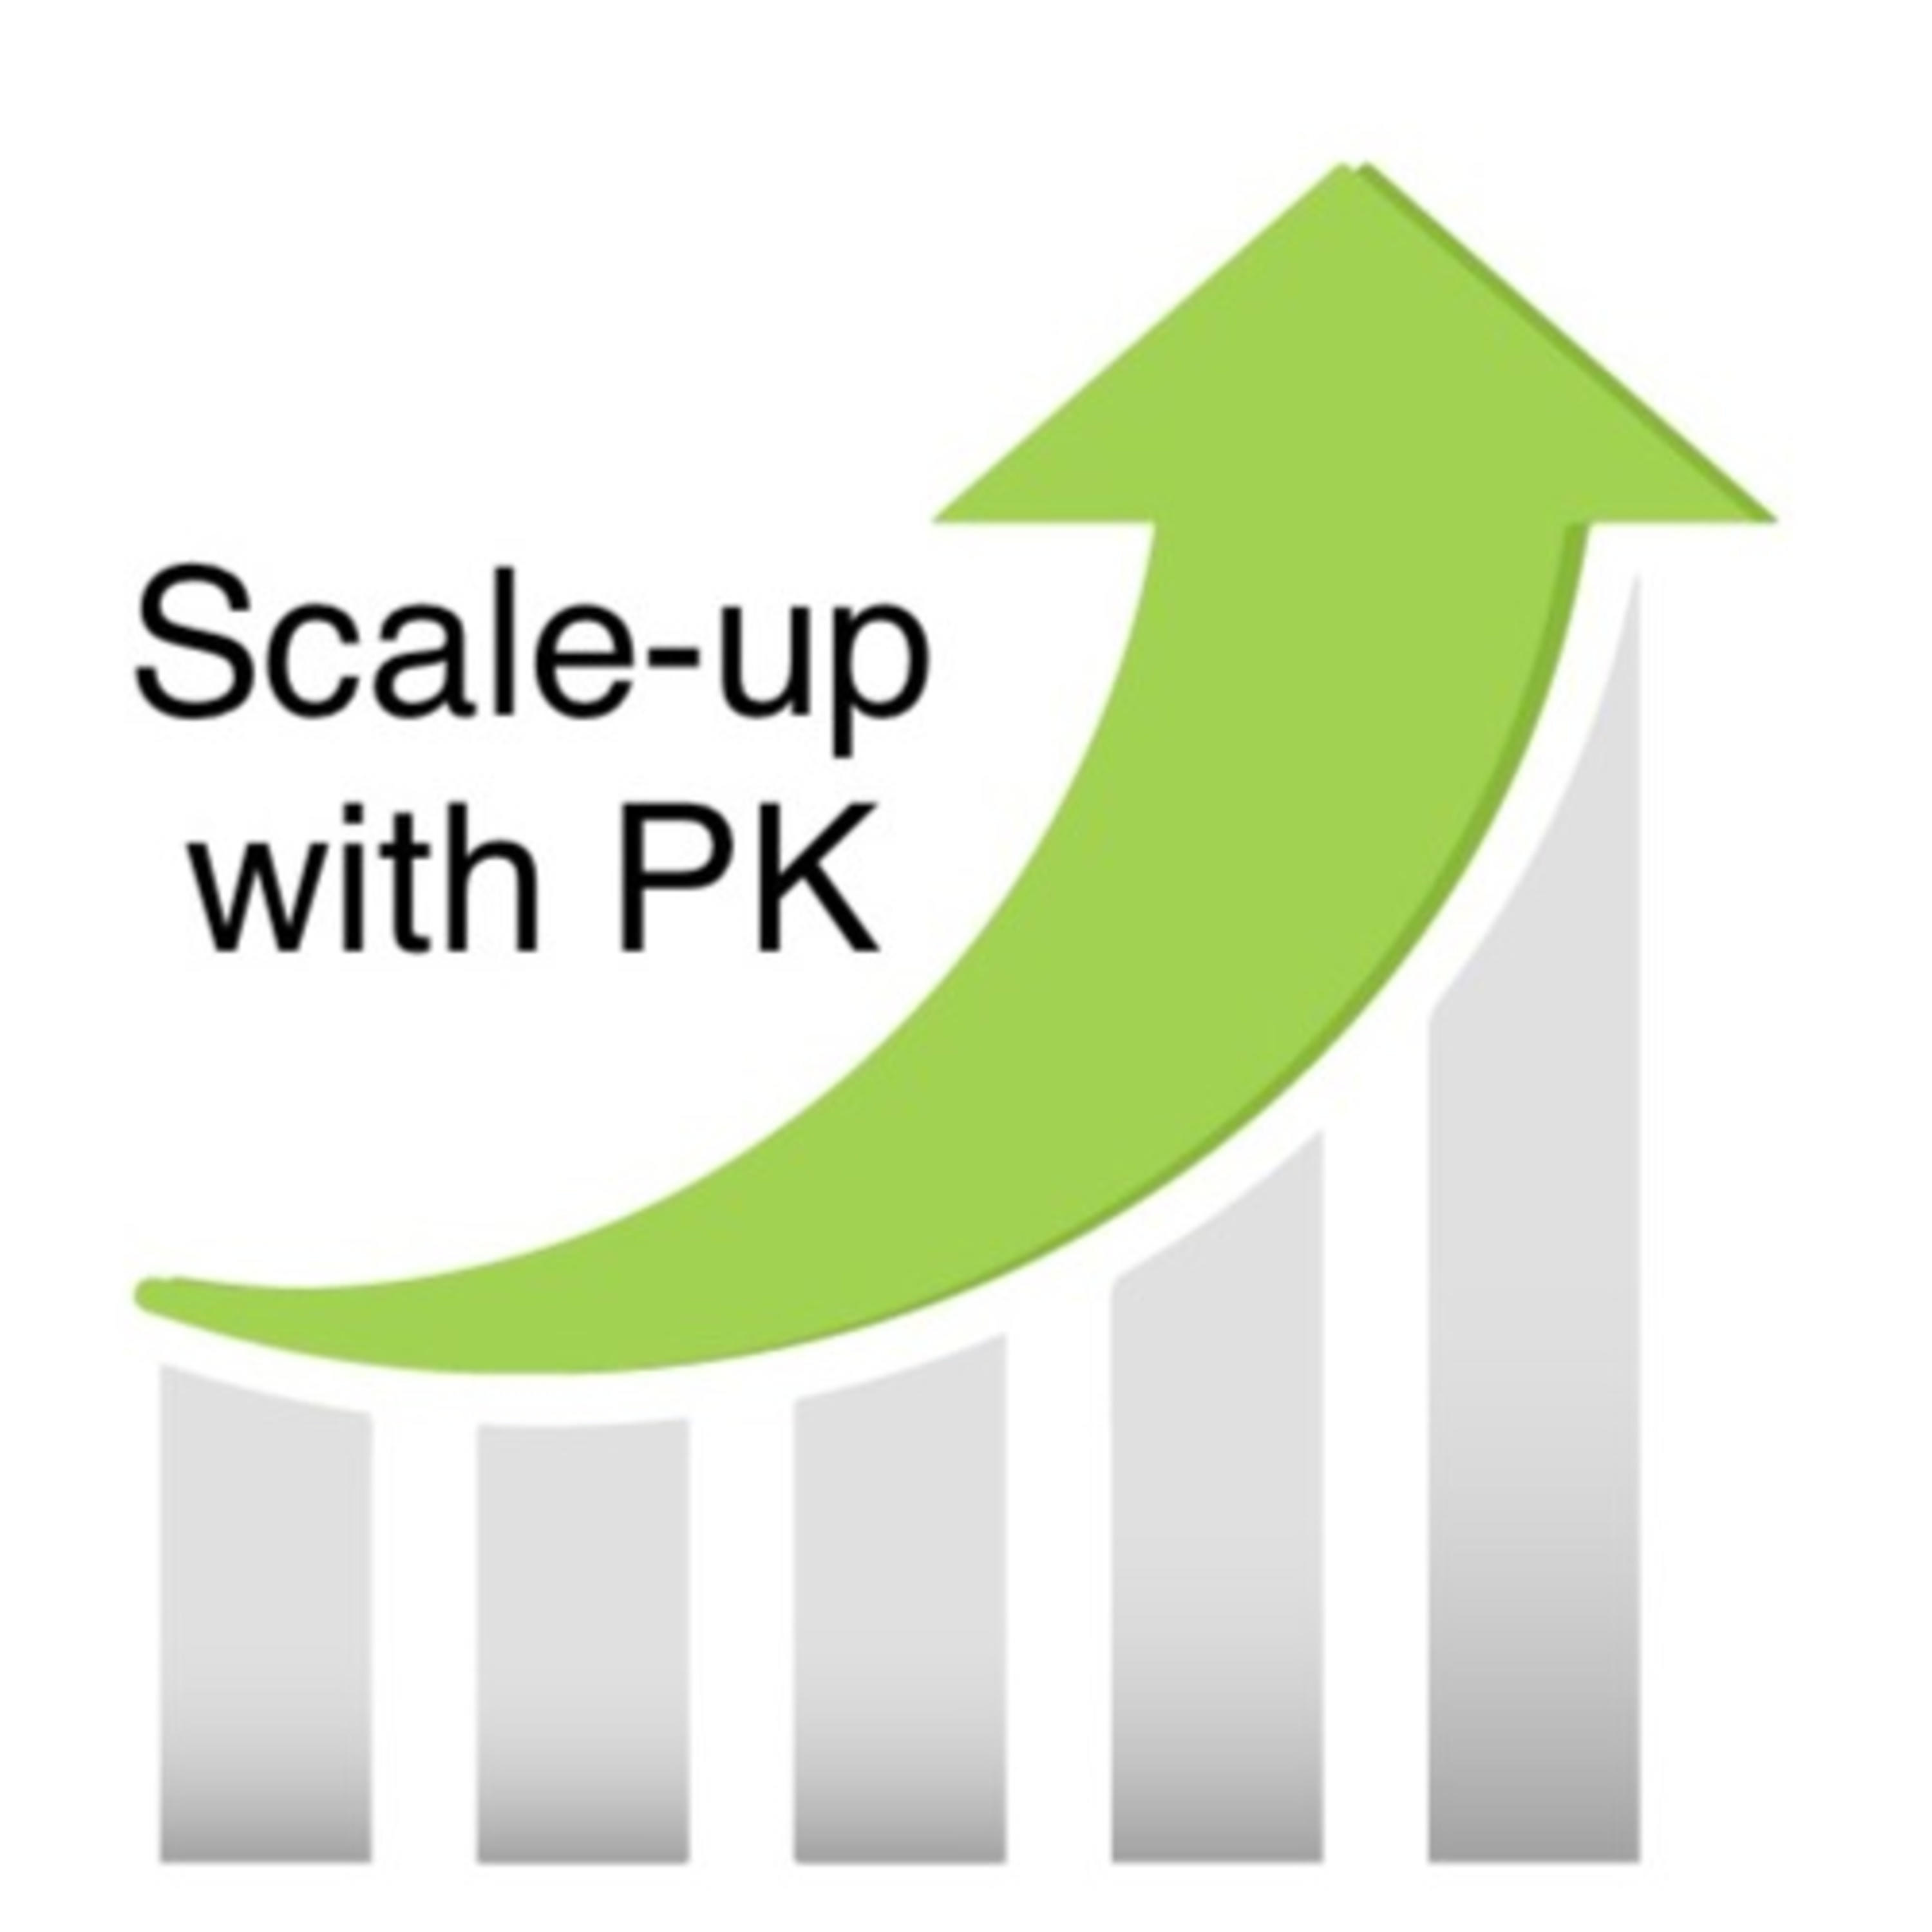 Scale-up with PK!